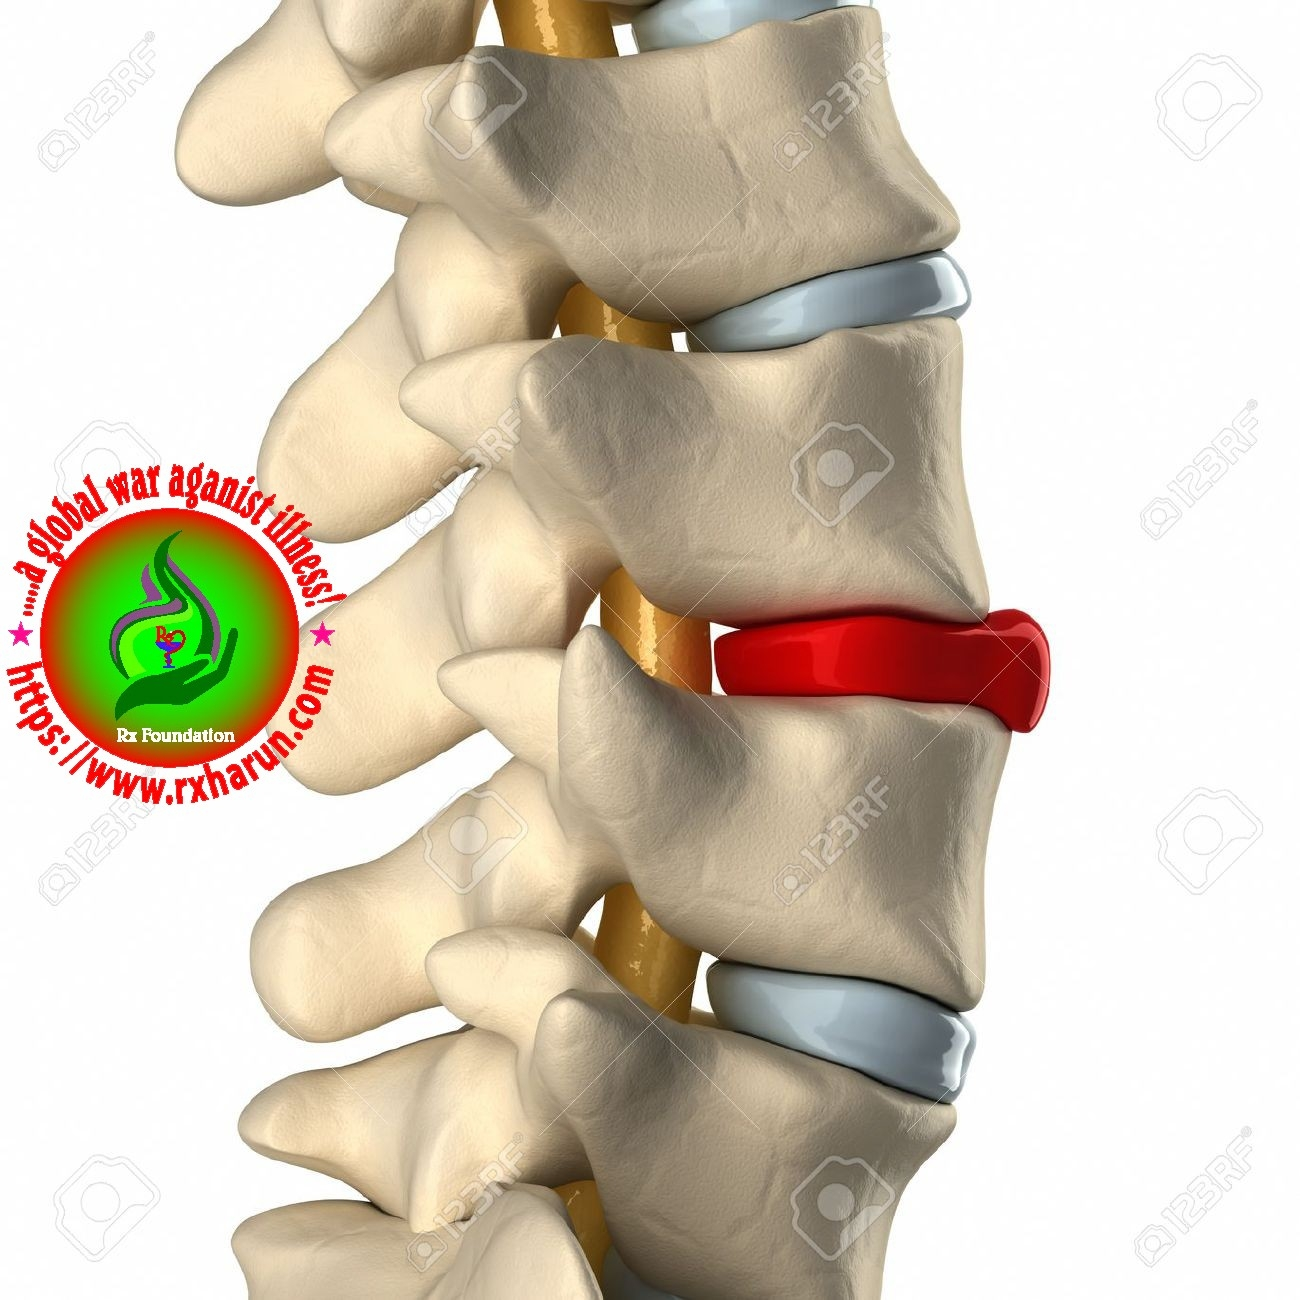 L4 and S1 Disc Herniation, L4 and S1 Disc Herniation – Causes, Symptoms, Treatment,